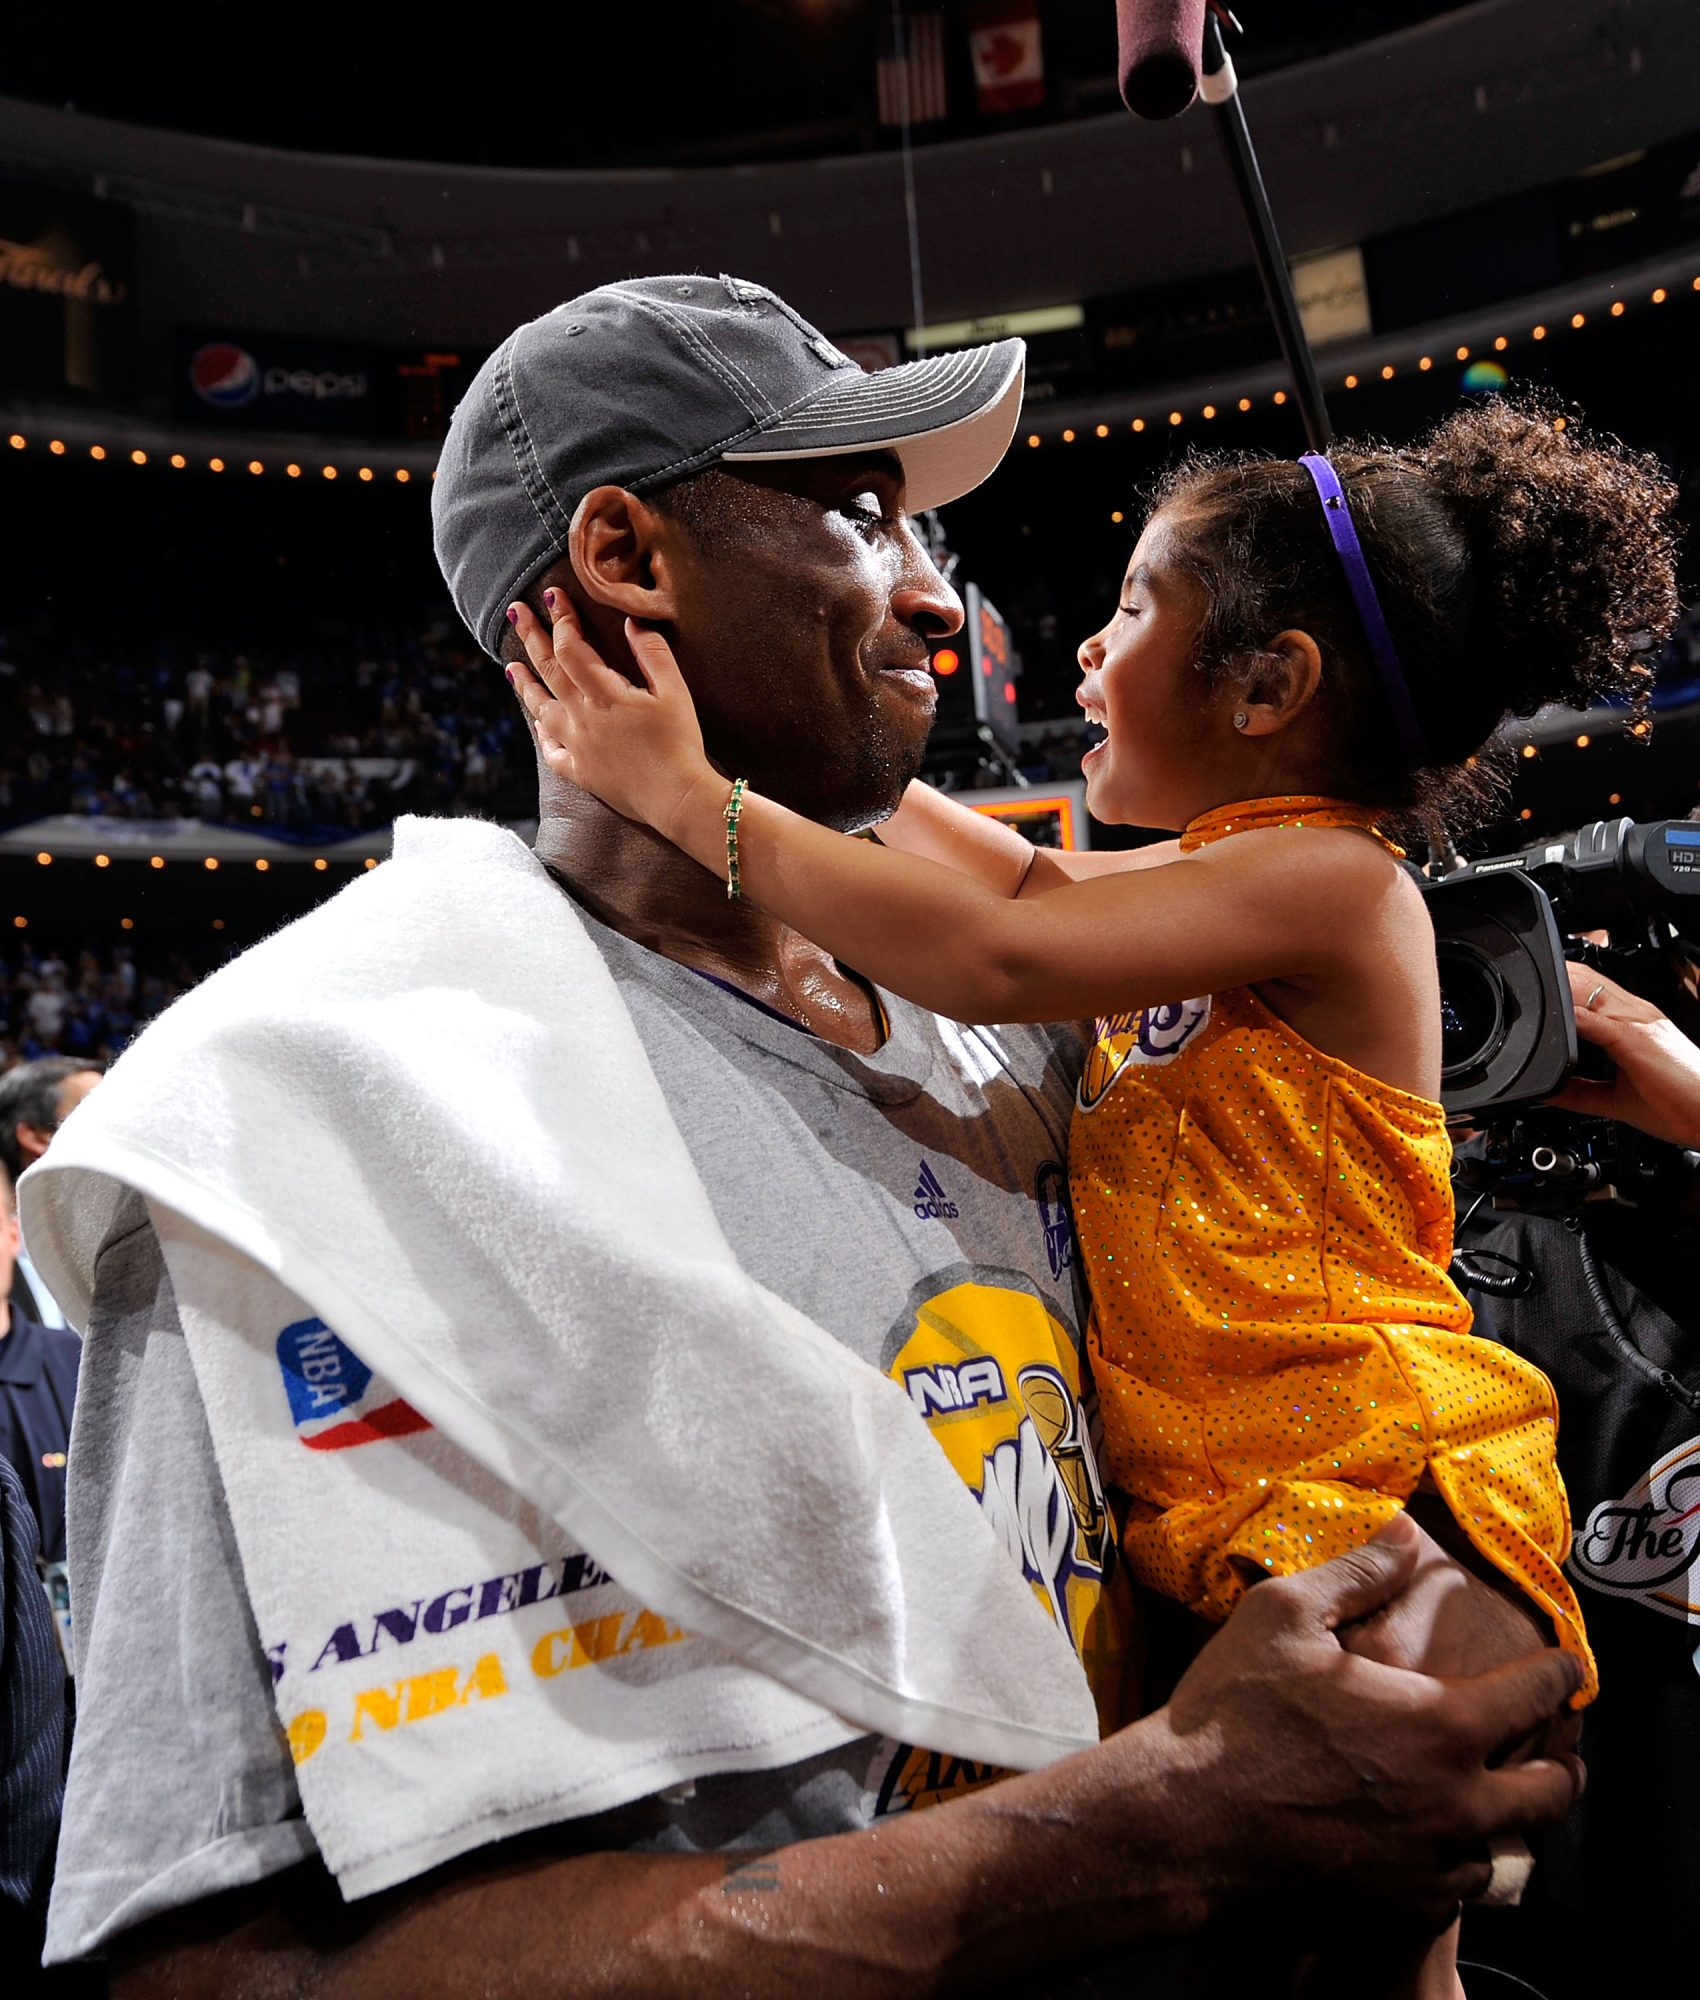 Kobe Bryant, Daughter GIanna